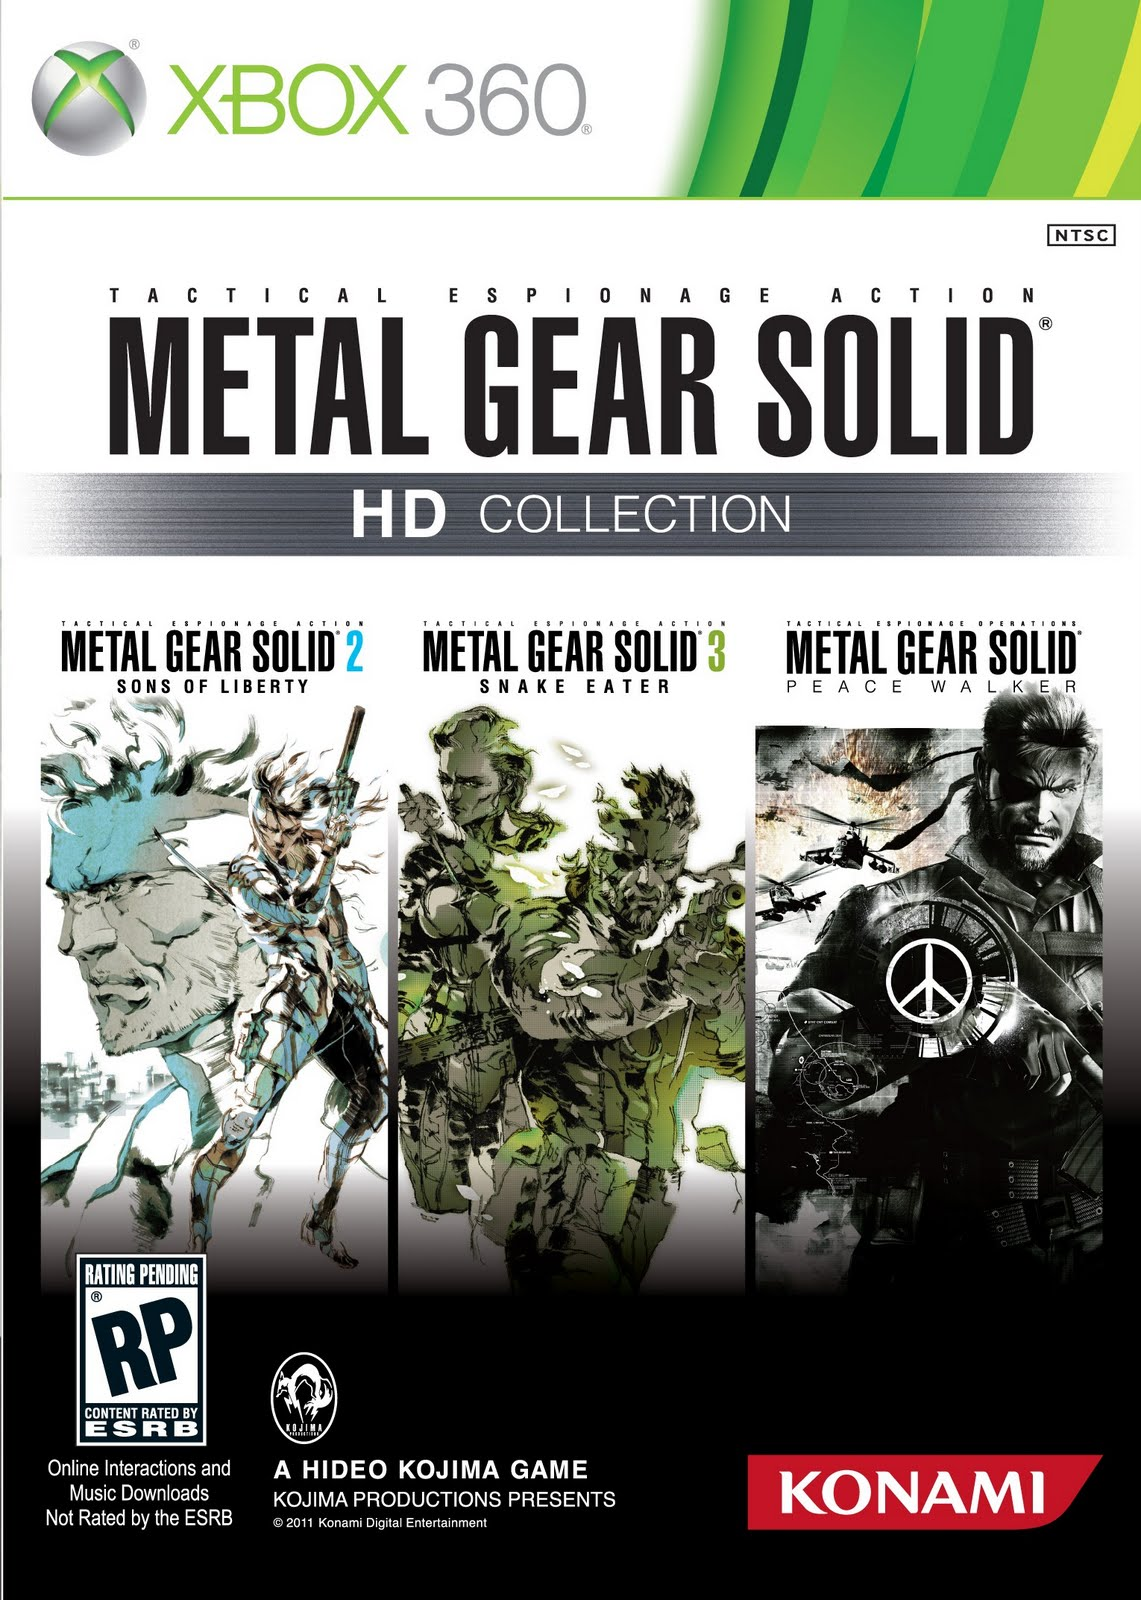 Free Downloaded Gamez: Free Download Metal Gear Solid HD ... Xbox 360 Game Covers Download